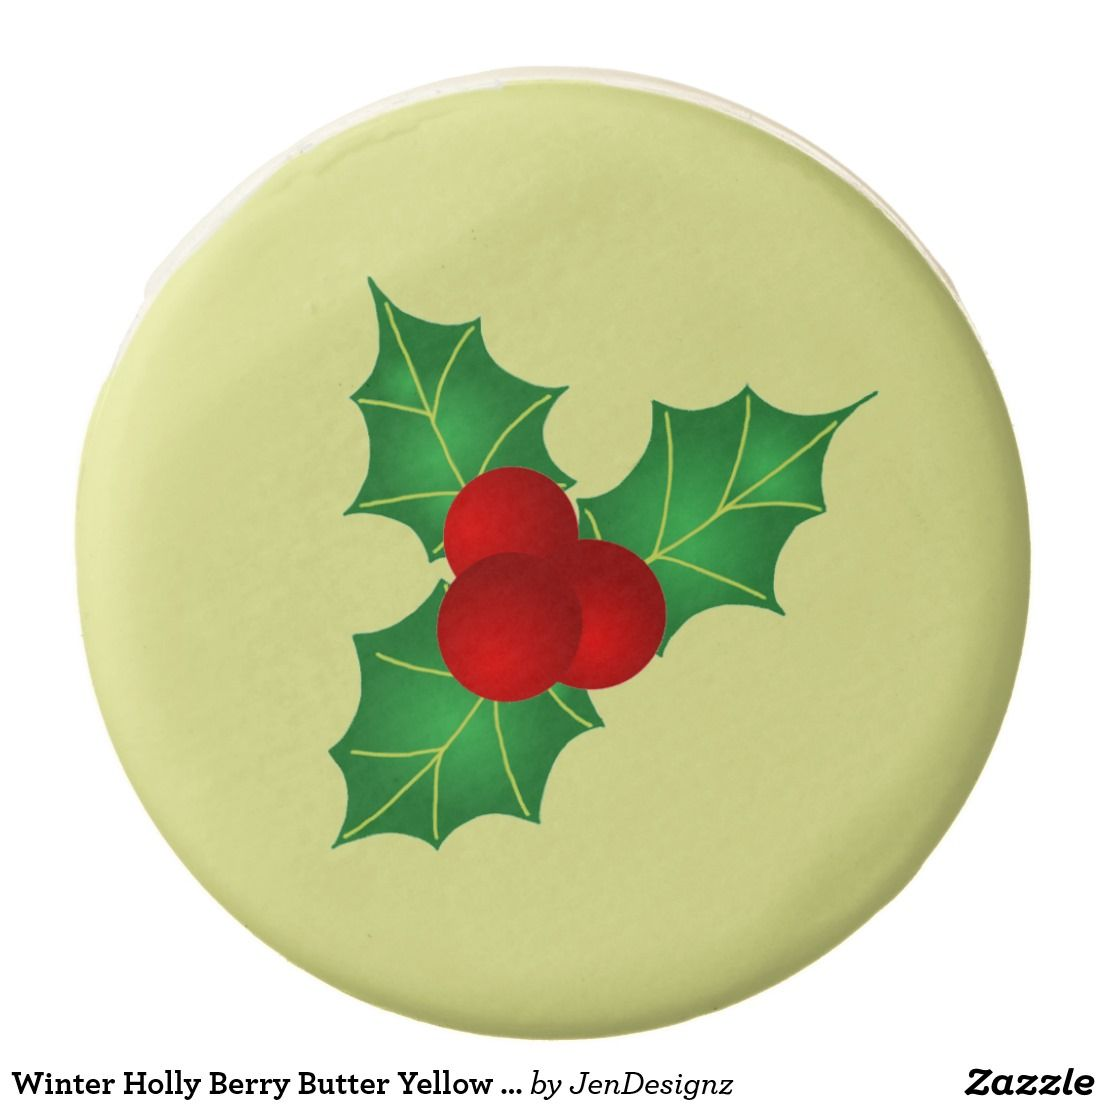 Winter Holly Berry Butter Yellow Chocolate Cookie Zazzle Com